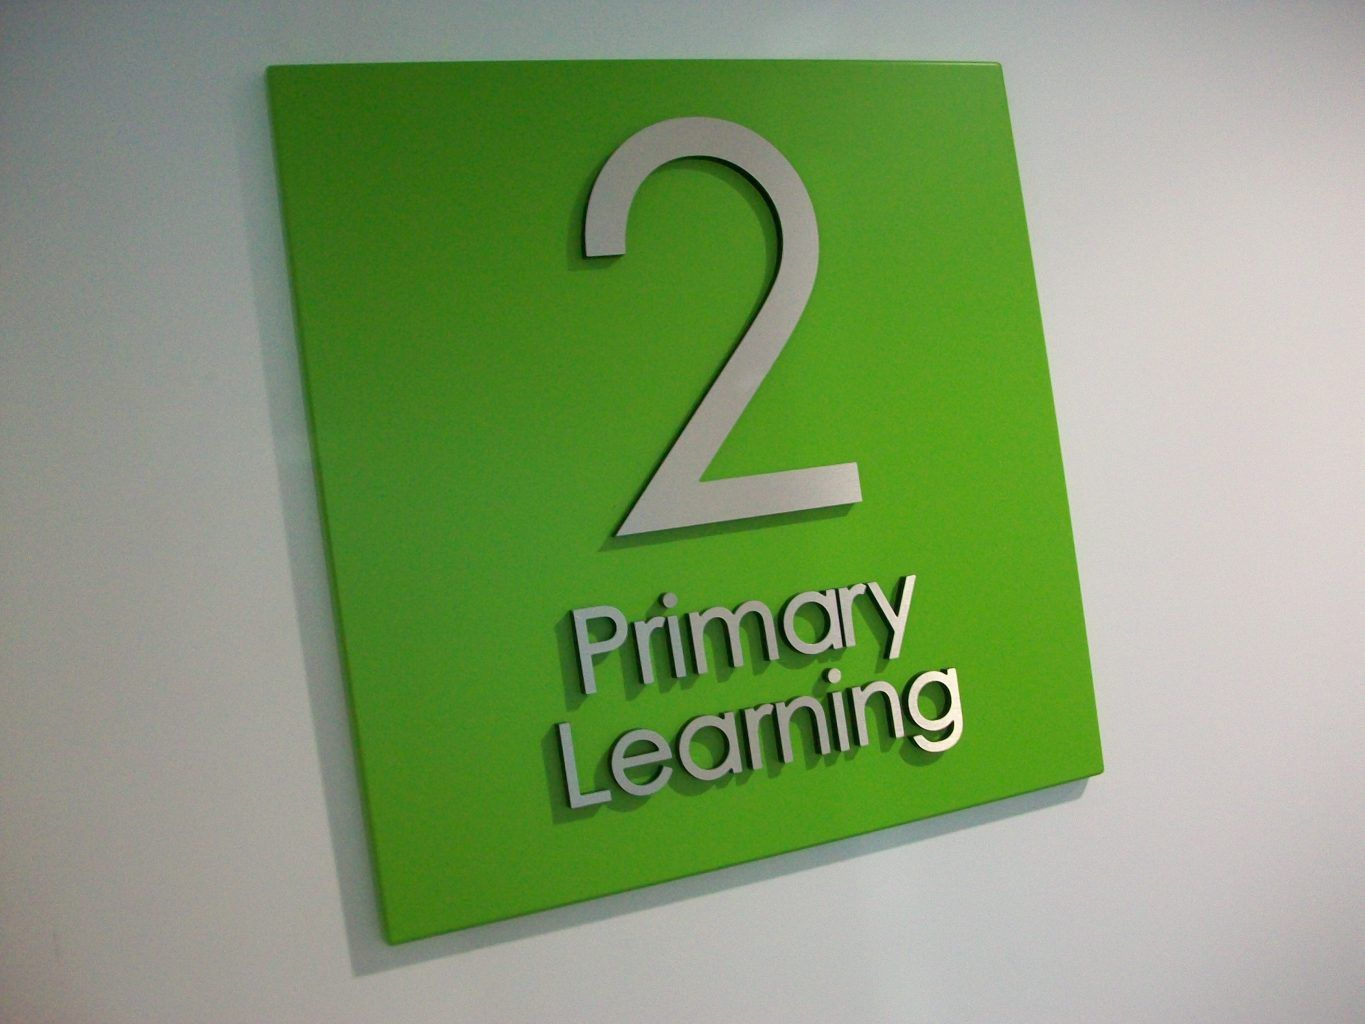 Aluminium Sign tray With brushed stainless steel letters mounted to the face